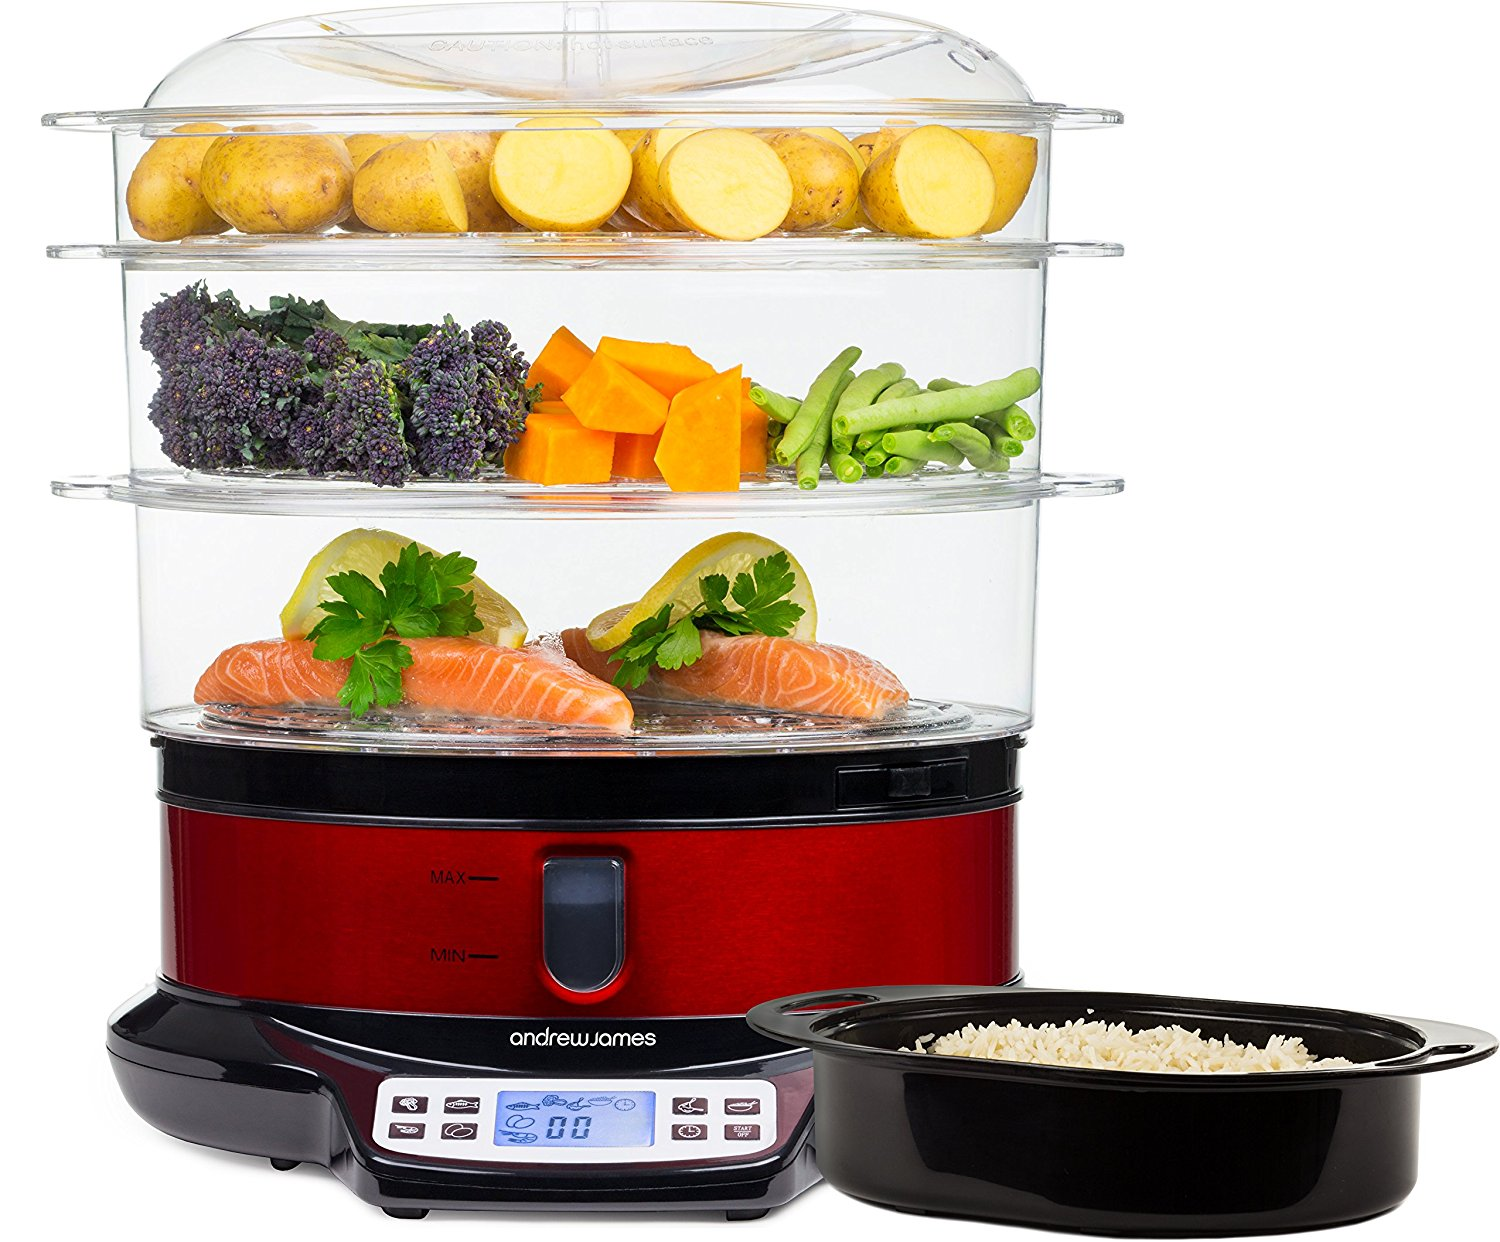 Andrew James Red 3 Tier Digital Food Steamer Best